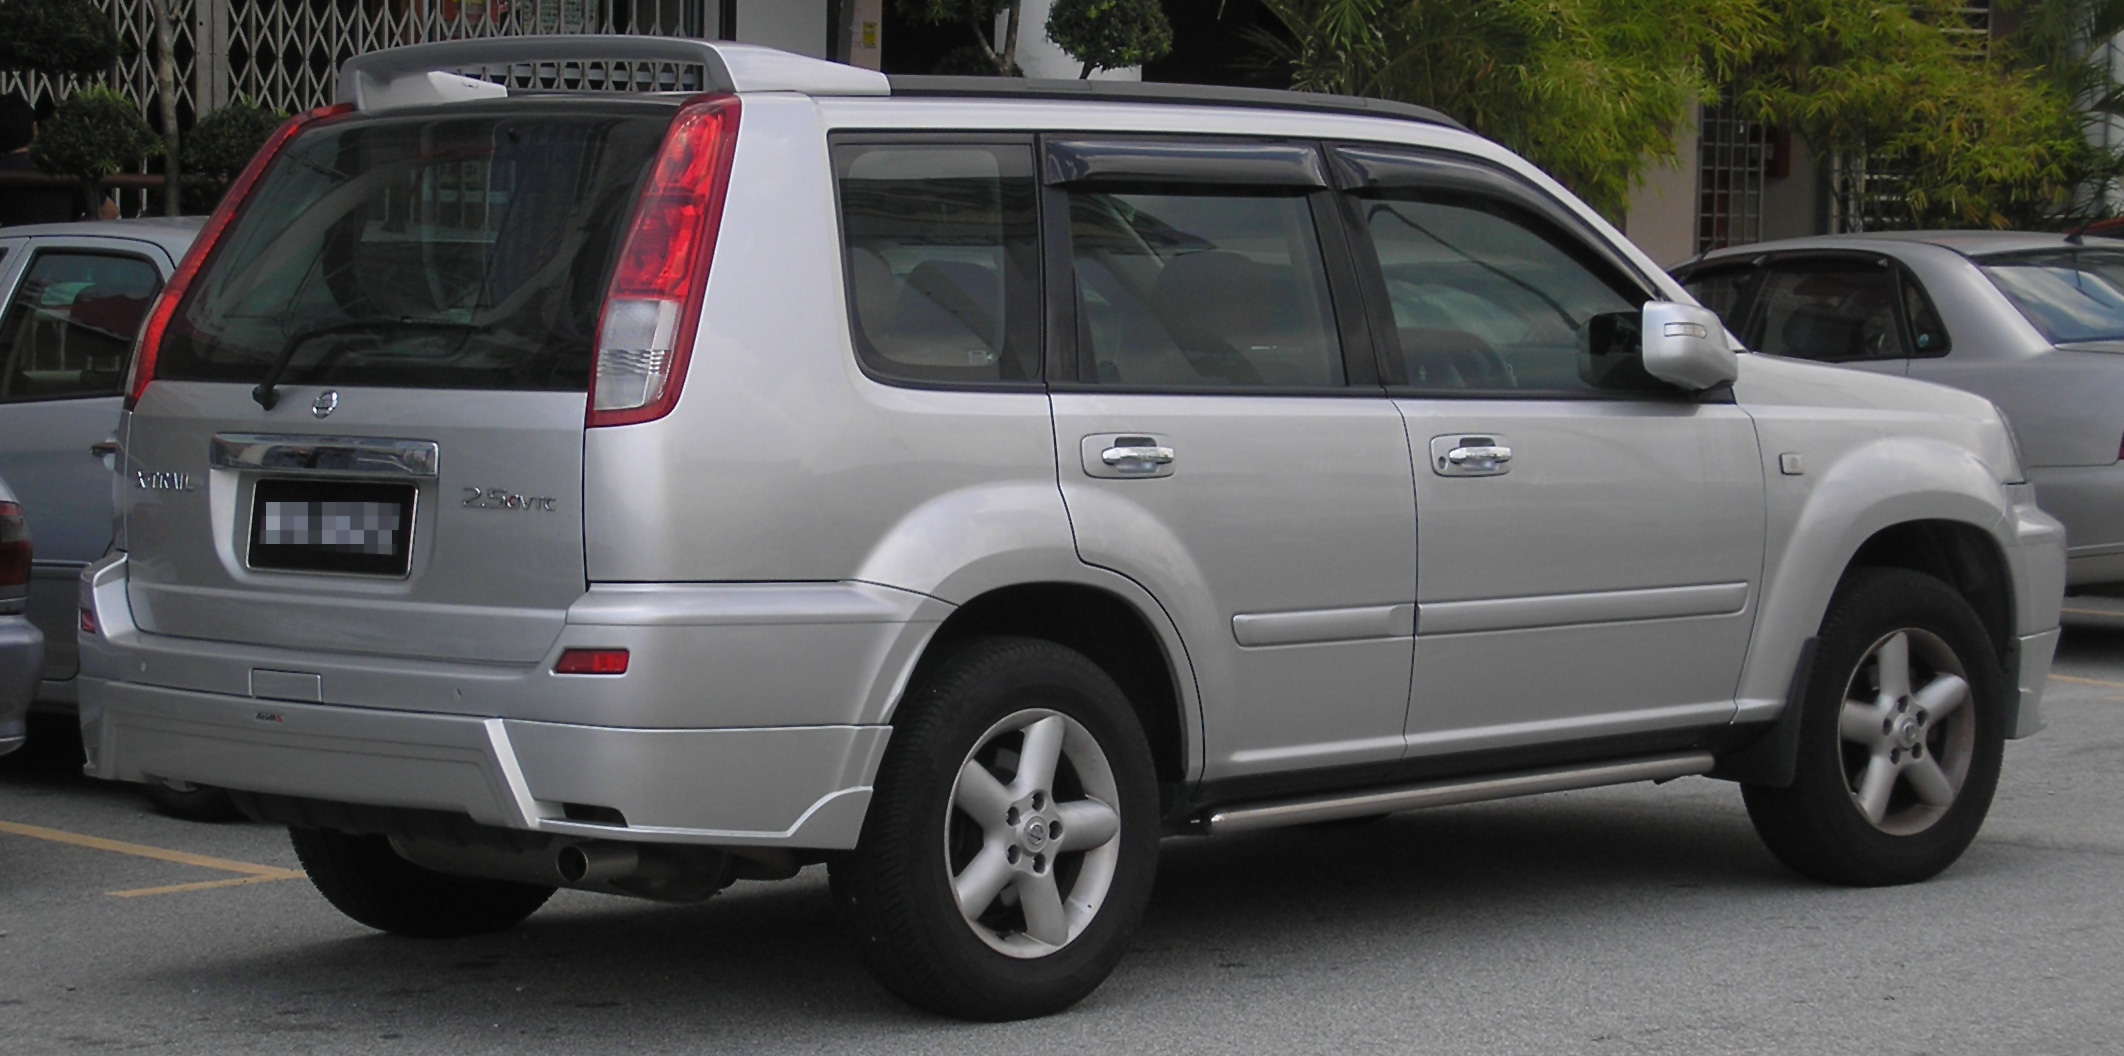 file nissan x trail first generation 2 5 cvtc rear wikimedia commons. Black Bedroom Furniture Sets. Home Design Ideas